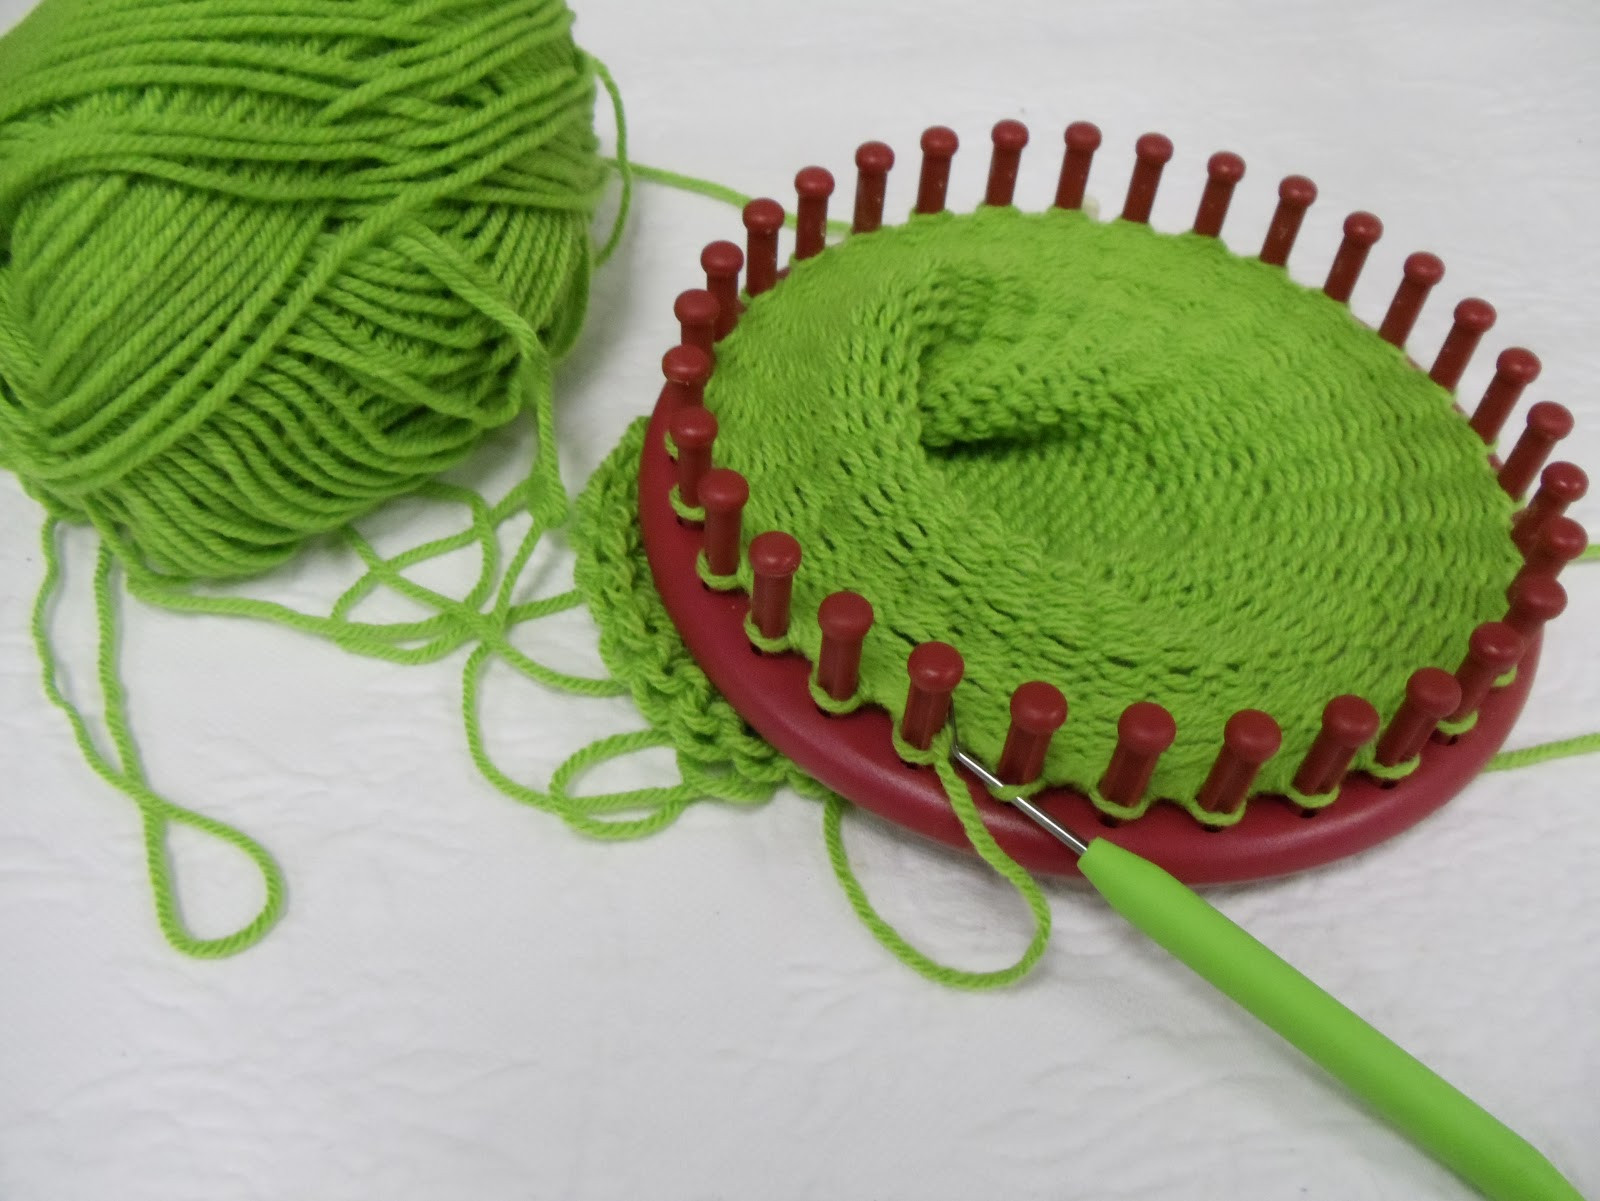 Hat Loom New Everyday Life at Leisure Loom Knitting — My First Hat Of Amazing 48 Pictures Hat Loom